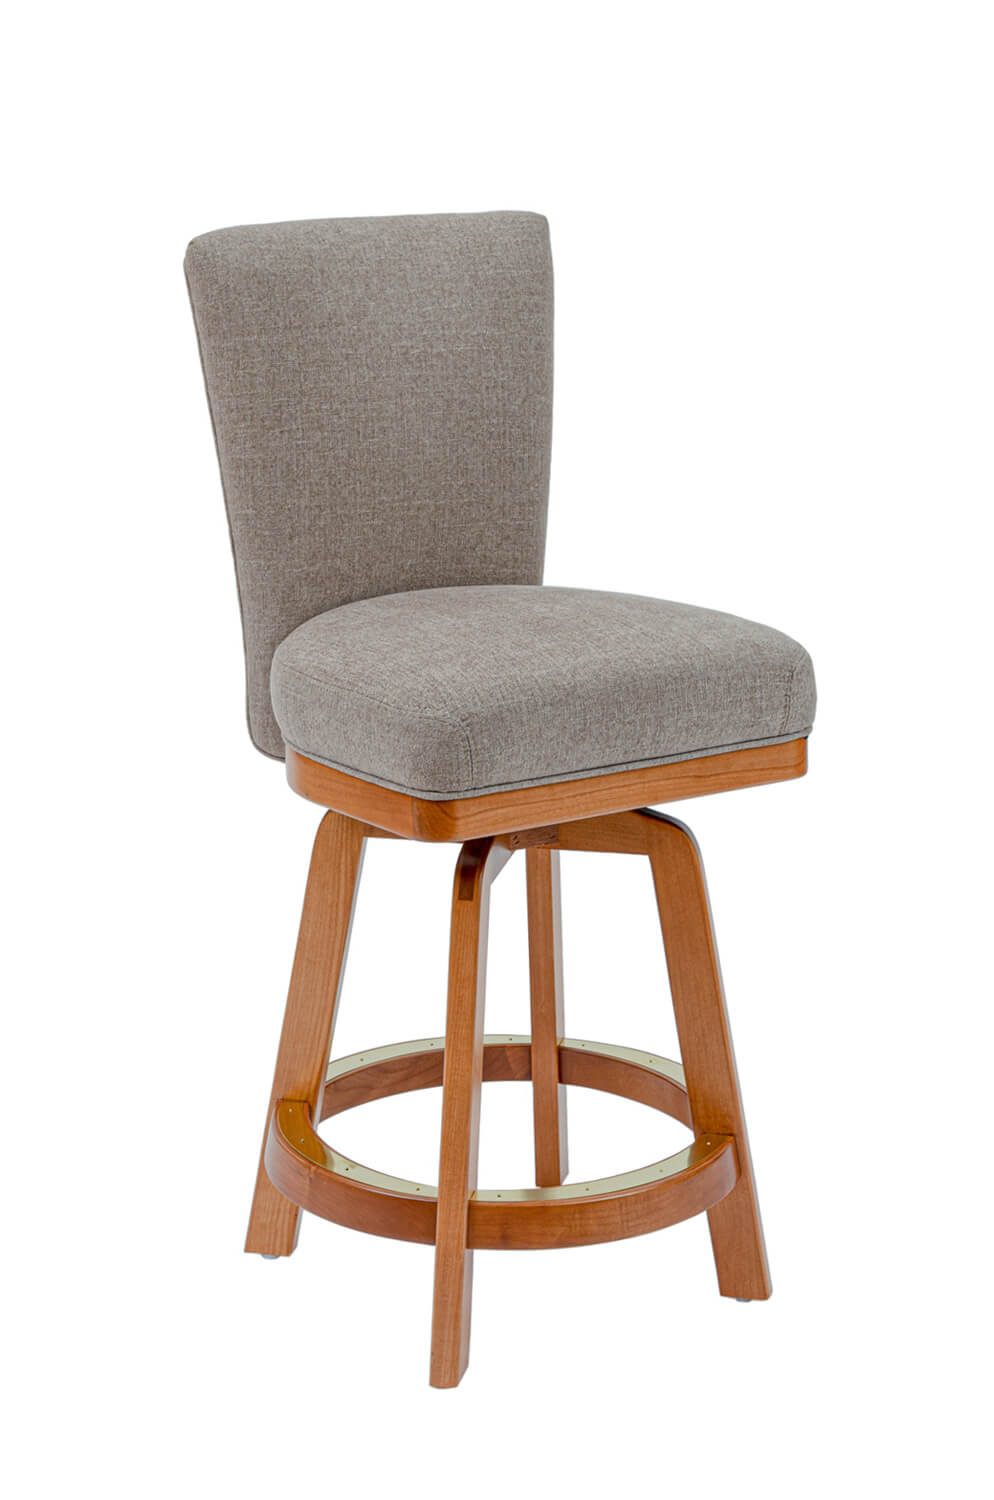 Darafeev's 917 Wood Upholstered Swivel Stool